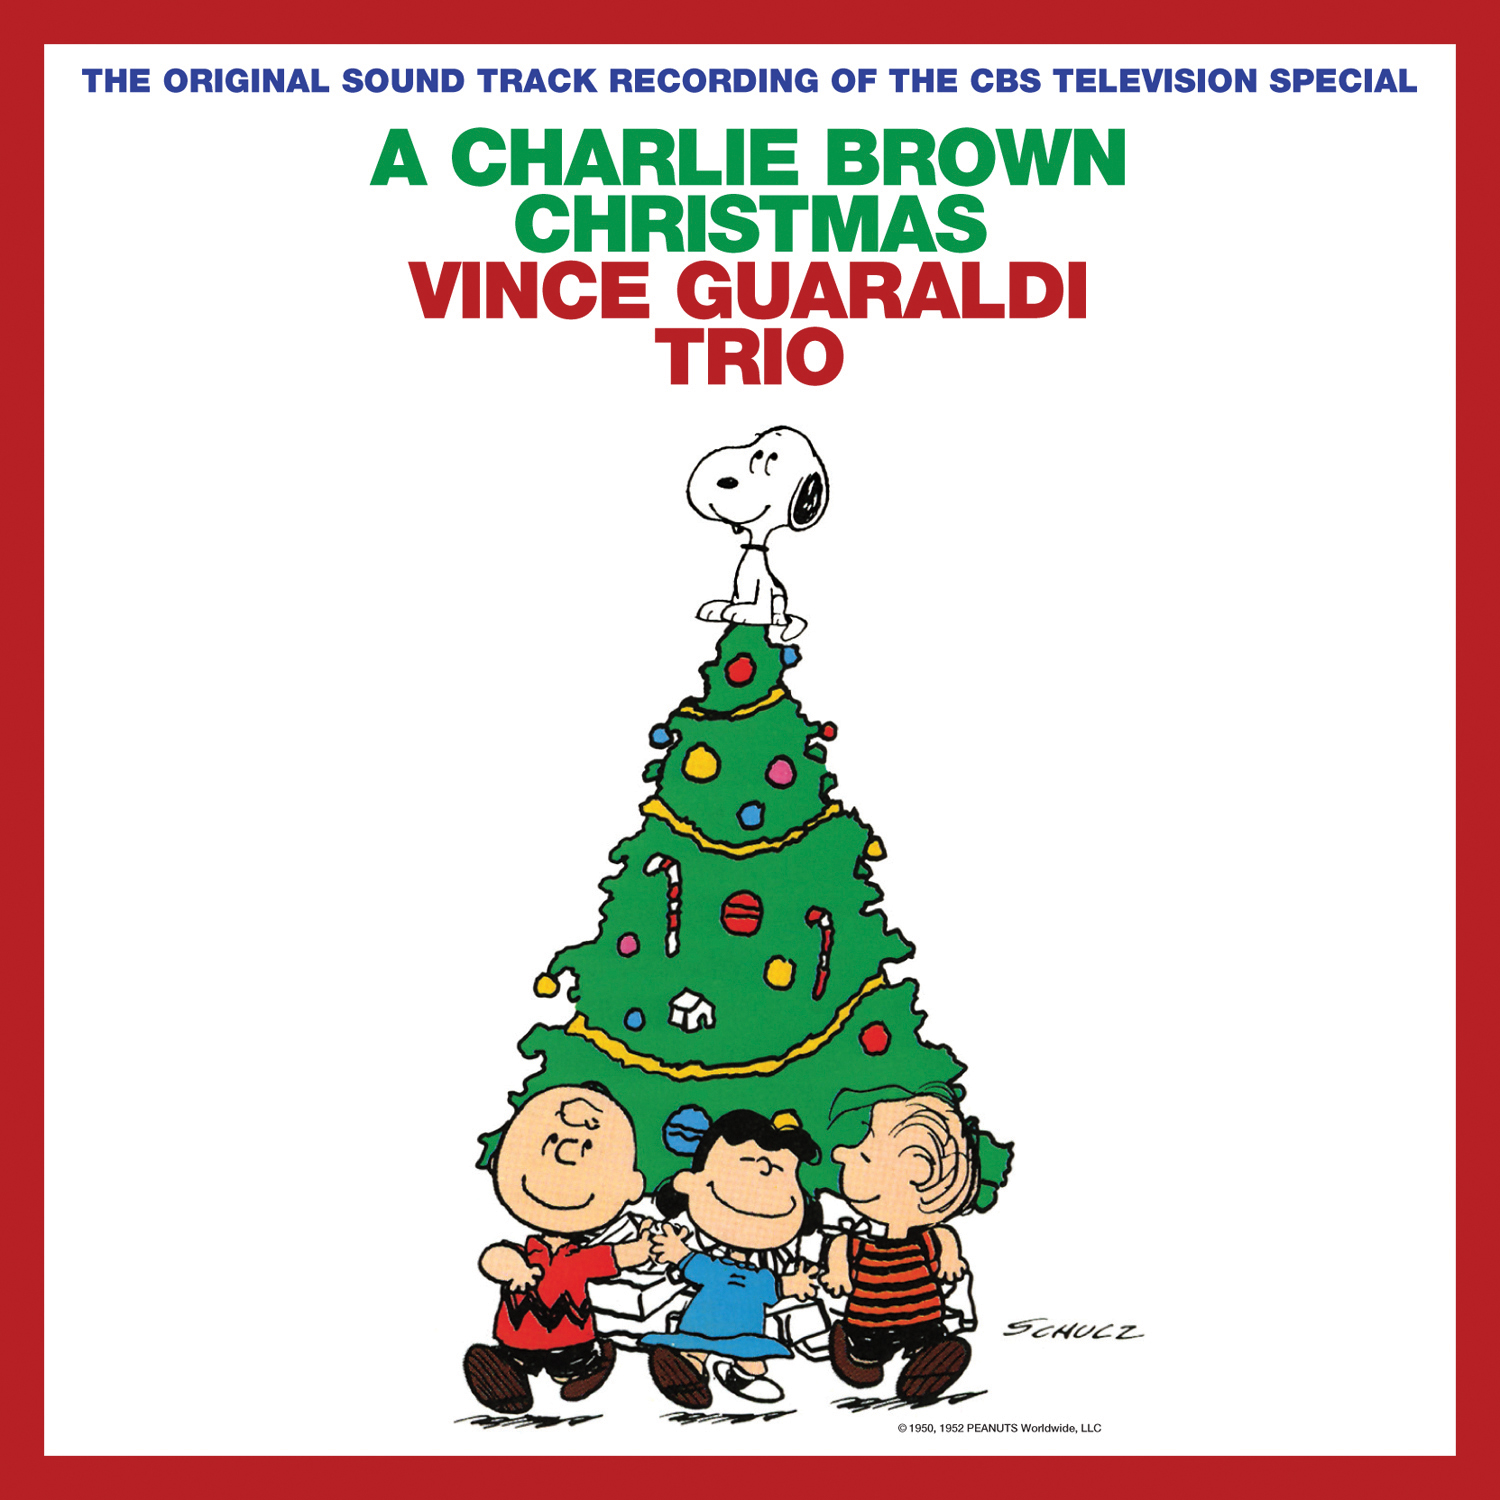 V. GURALDI: A CHARLIE BROWN CHRISTMAS